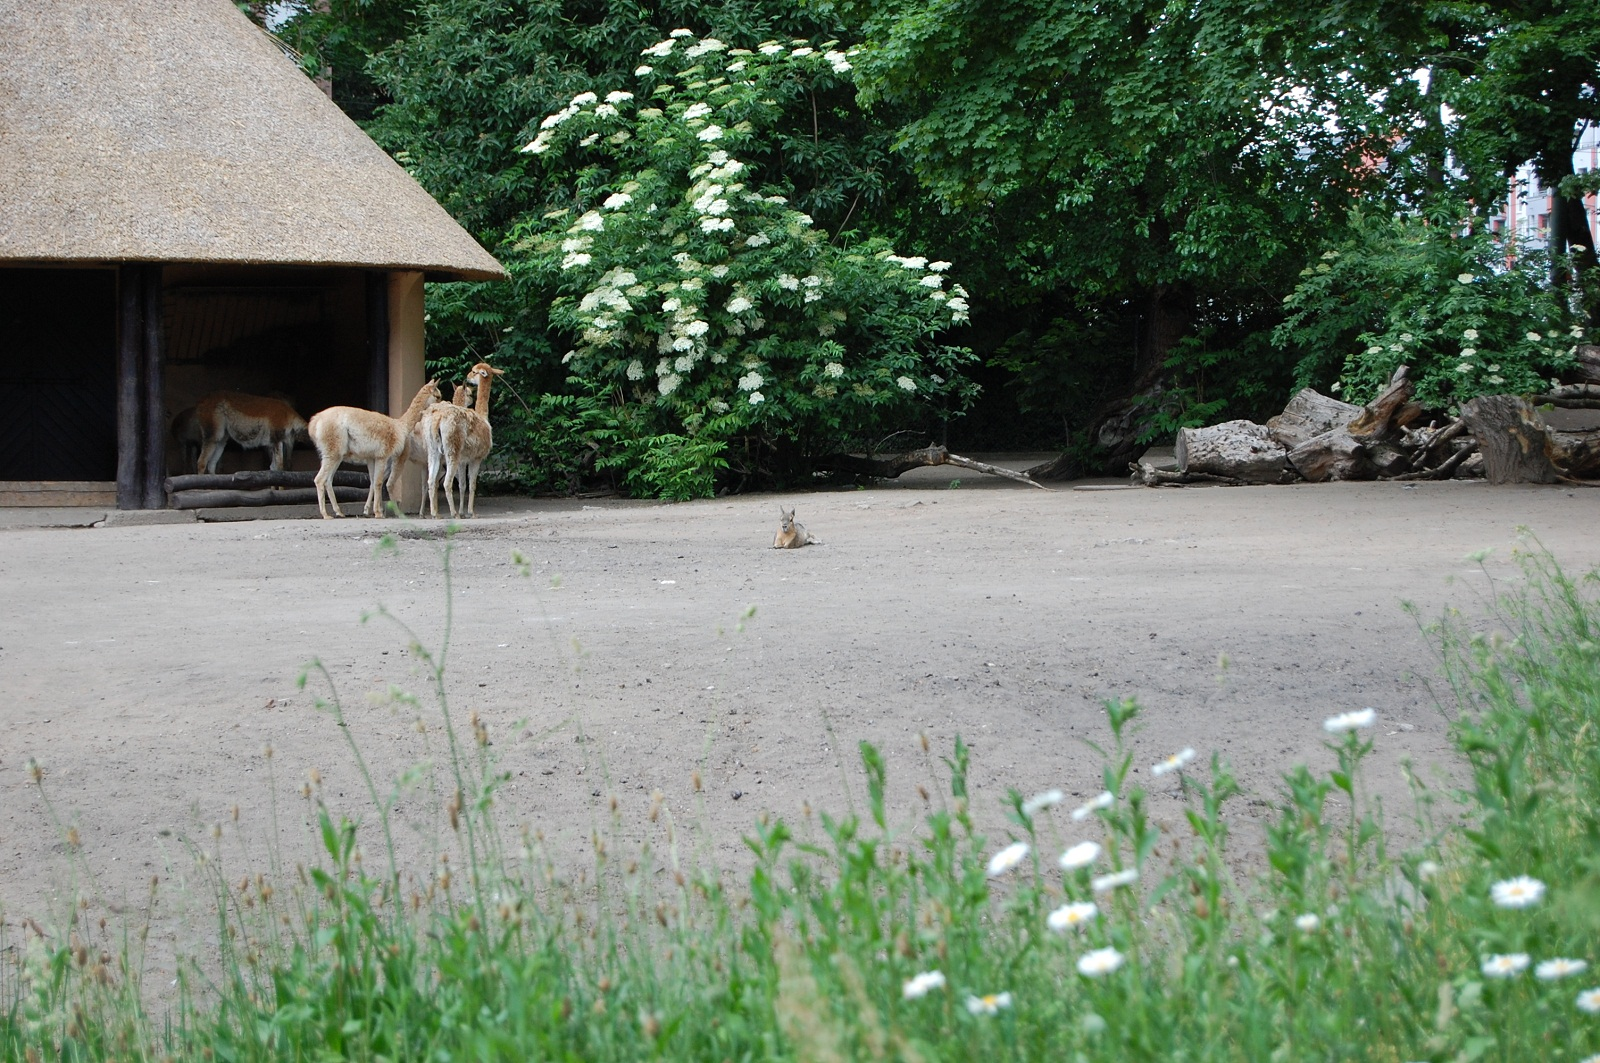 Frankfurt Zoo, Germany, Lamas and Kangaroo